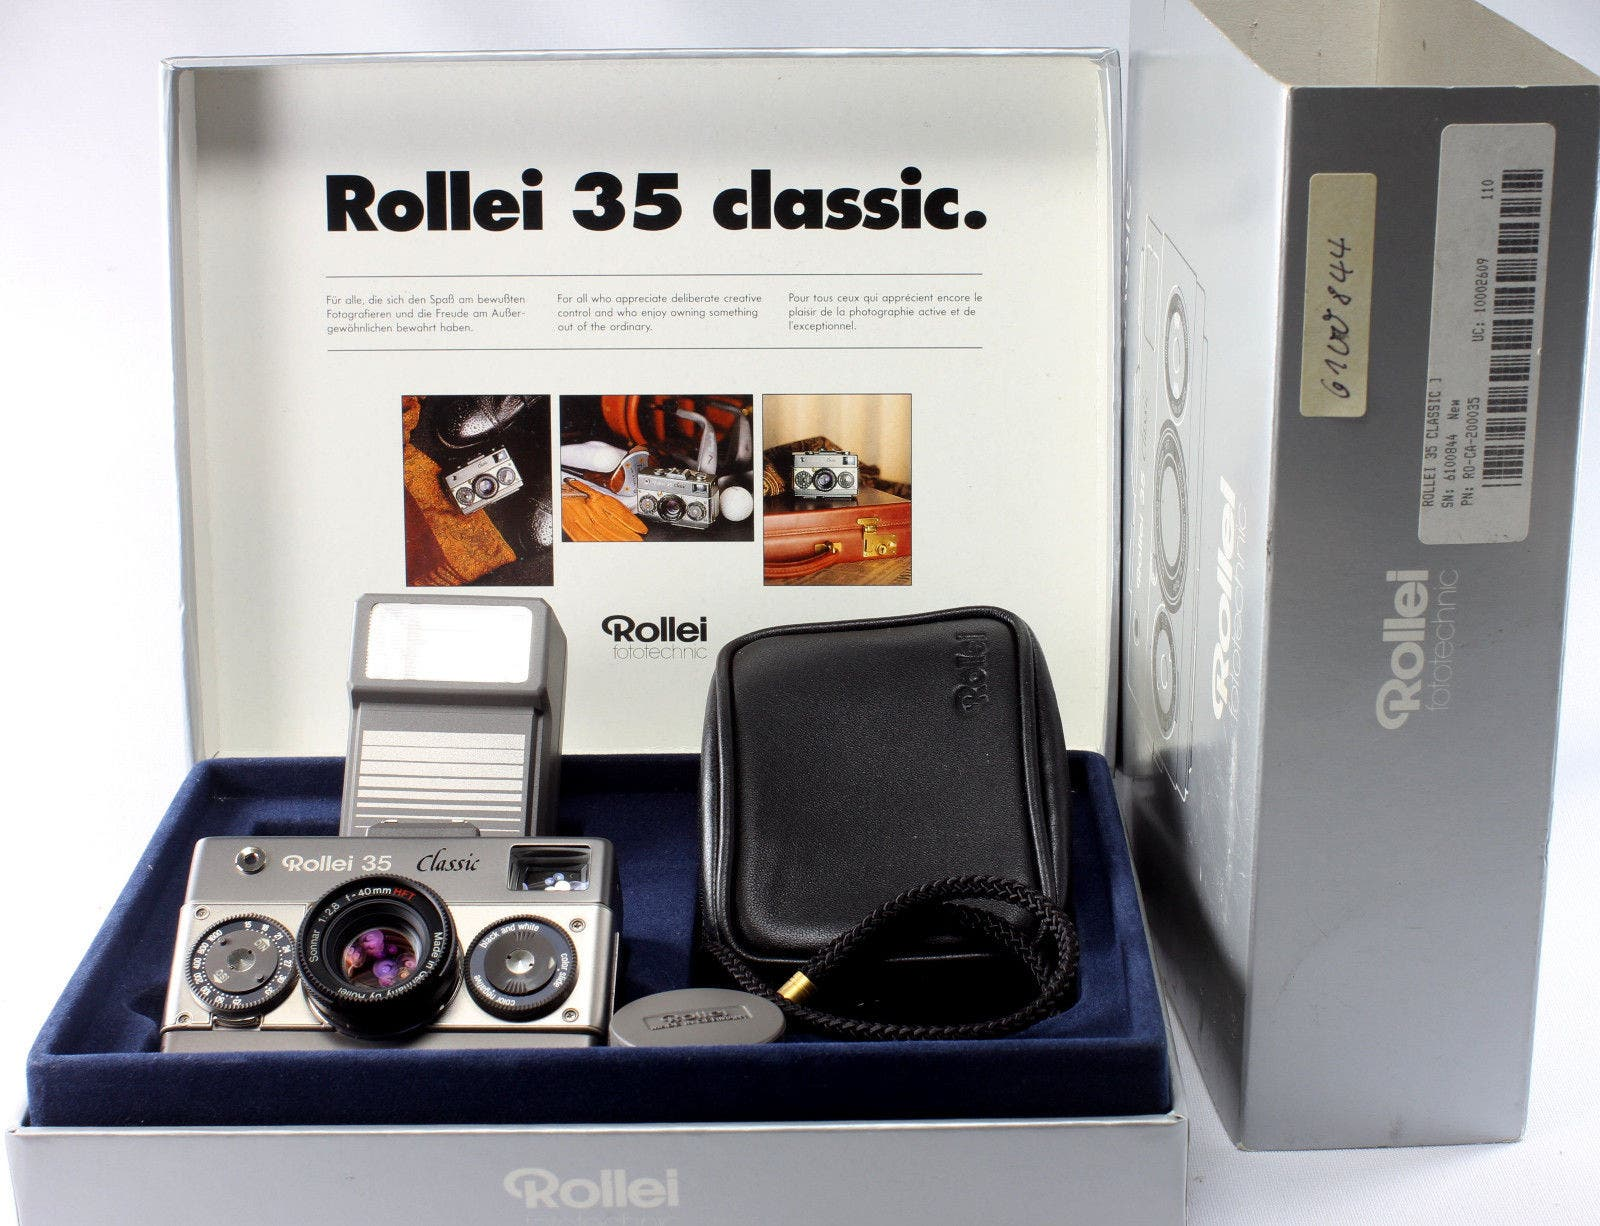 This Rollei 35 Classic Titanium Will Set You Back $2,600